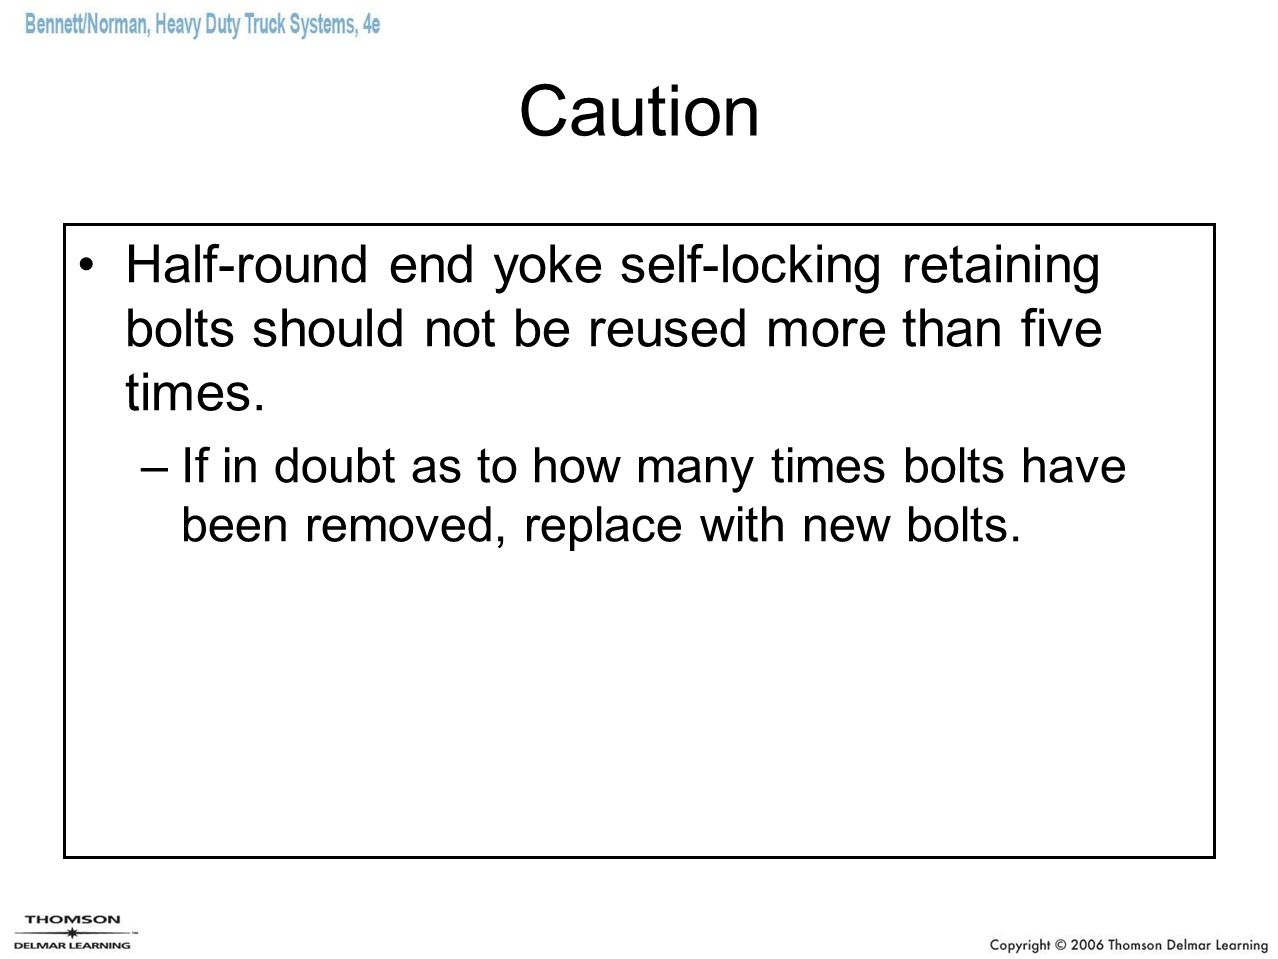 Caution Half-round end yoke self-locking retaining bolts should not be reused more than five times.